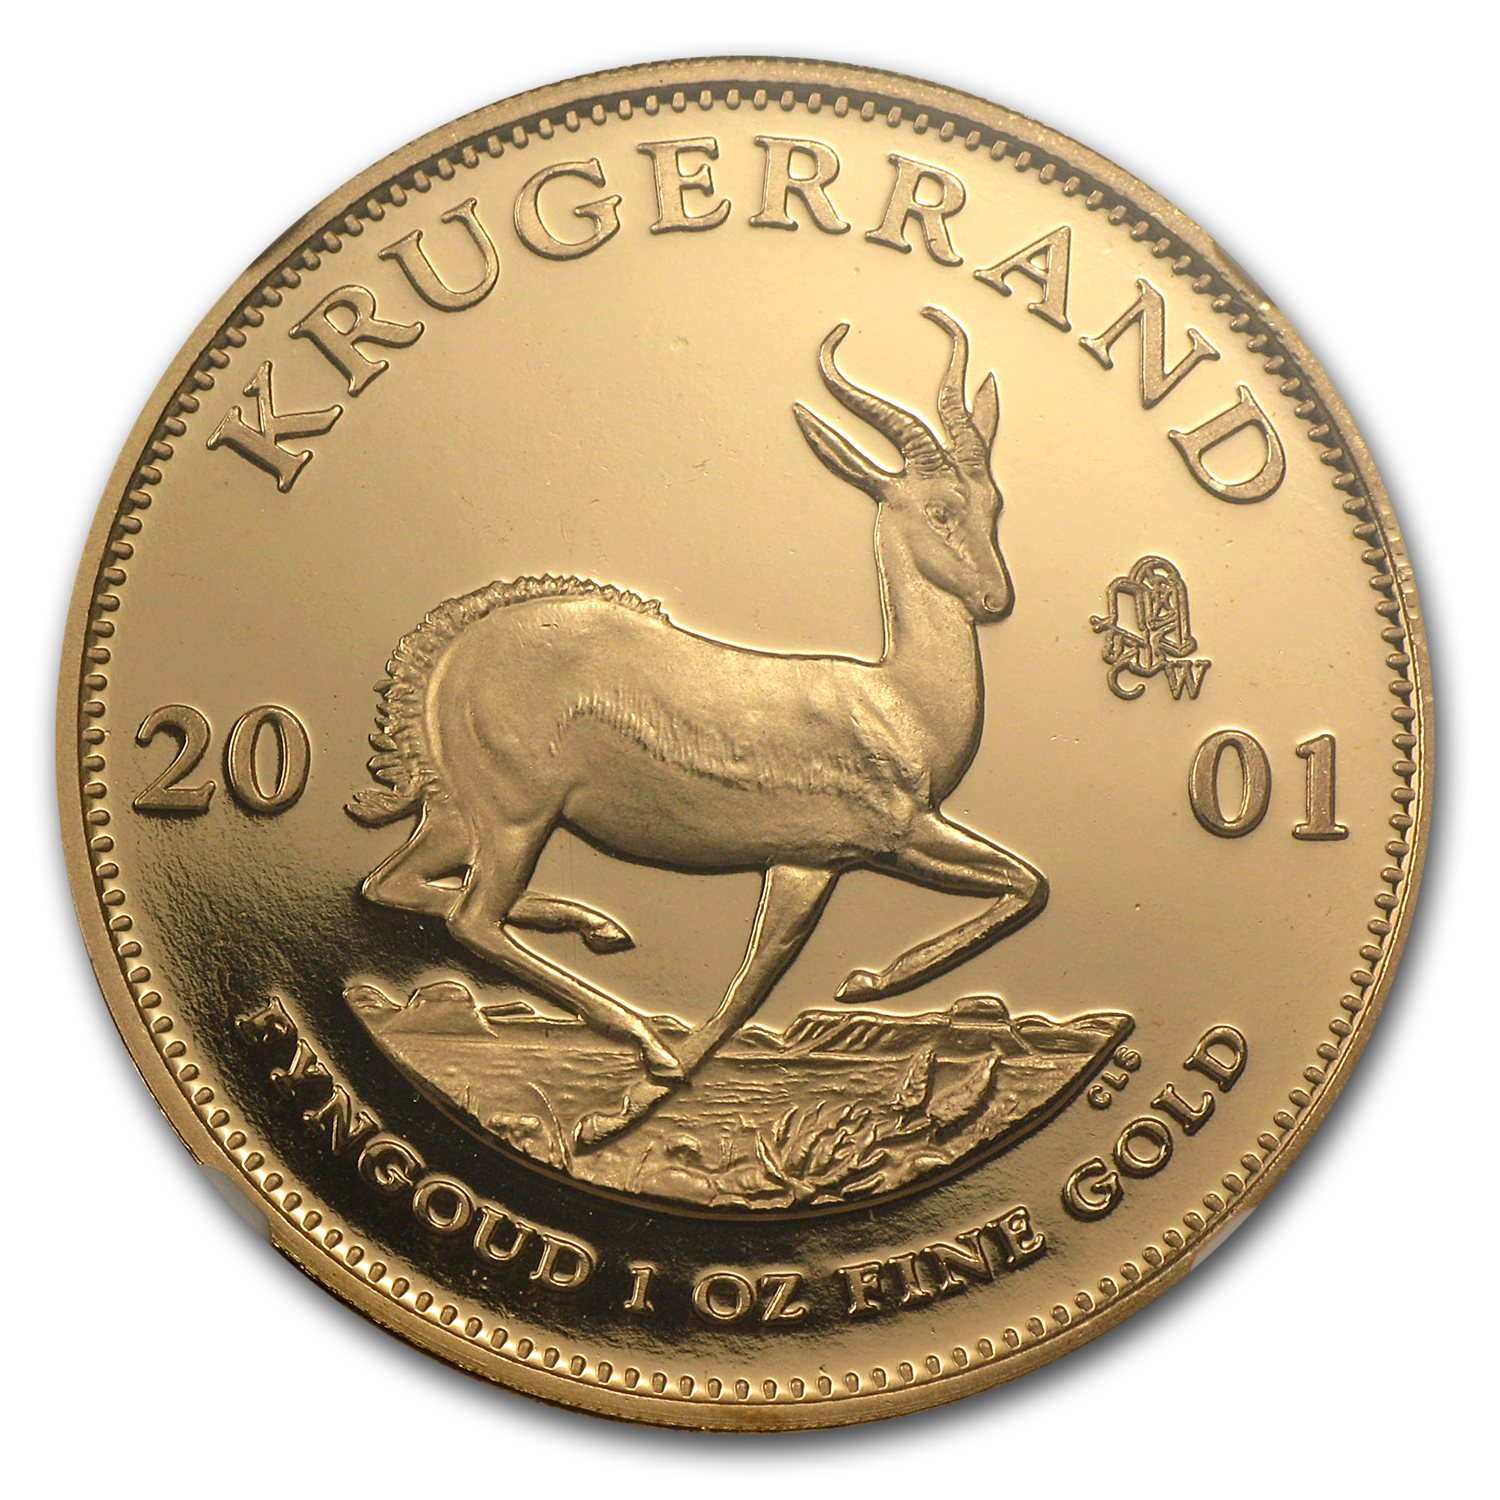 2001 1 oz Gold South African Krugerrand PF-67 NGC (CW Privy)